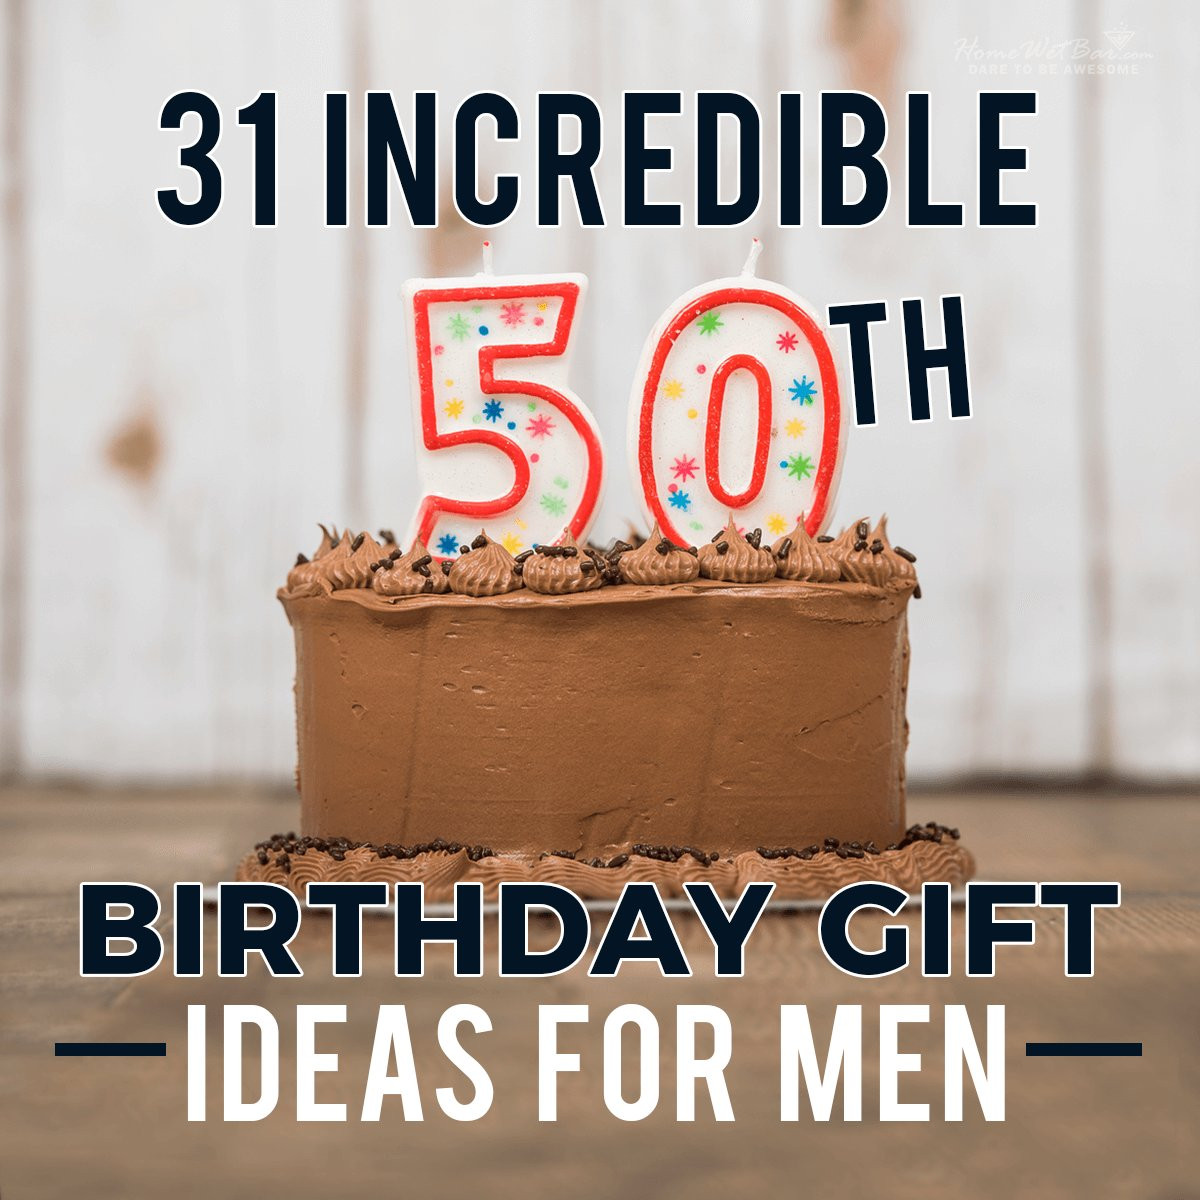 50Th Birthday Gift Ideas Men  31 Incredible 50th Birthday Gift Ideas for Men